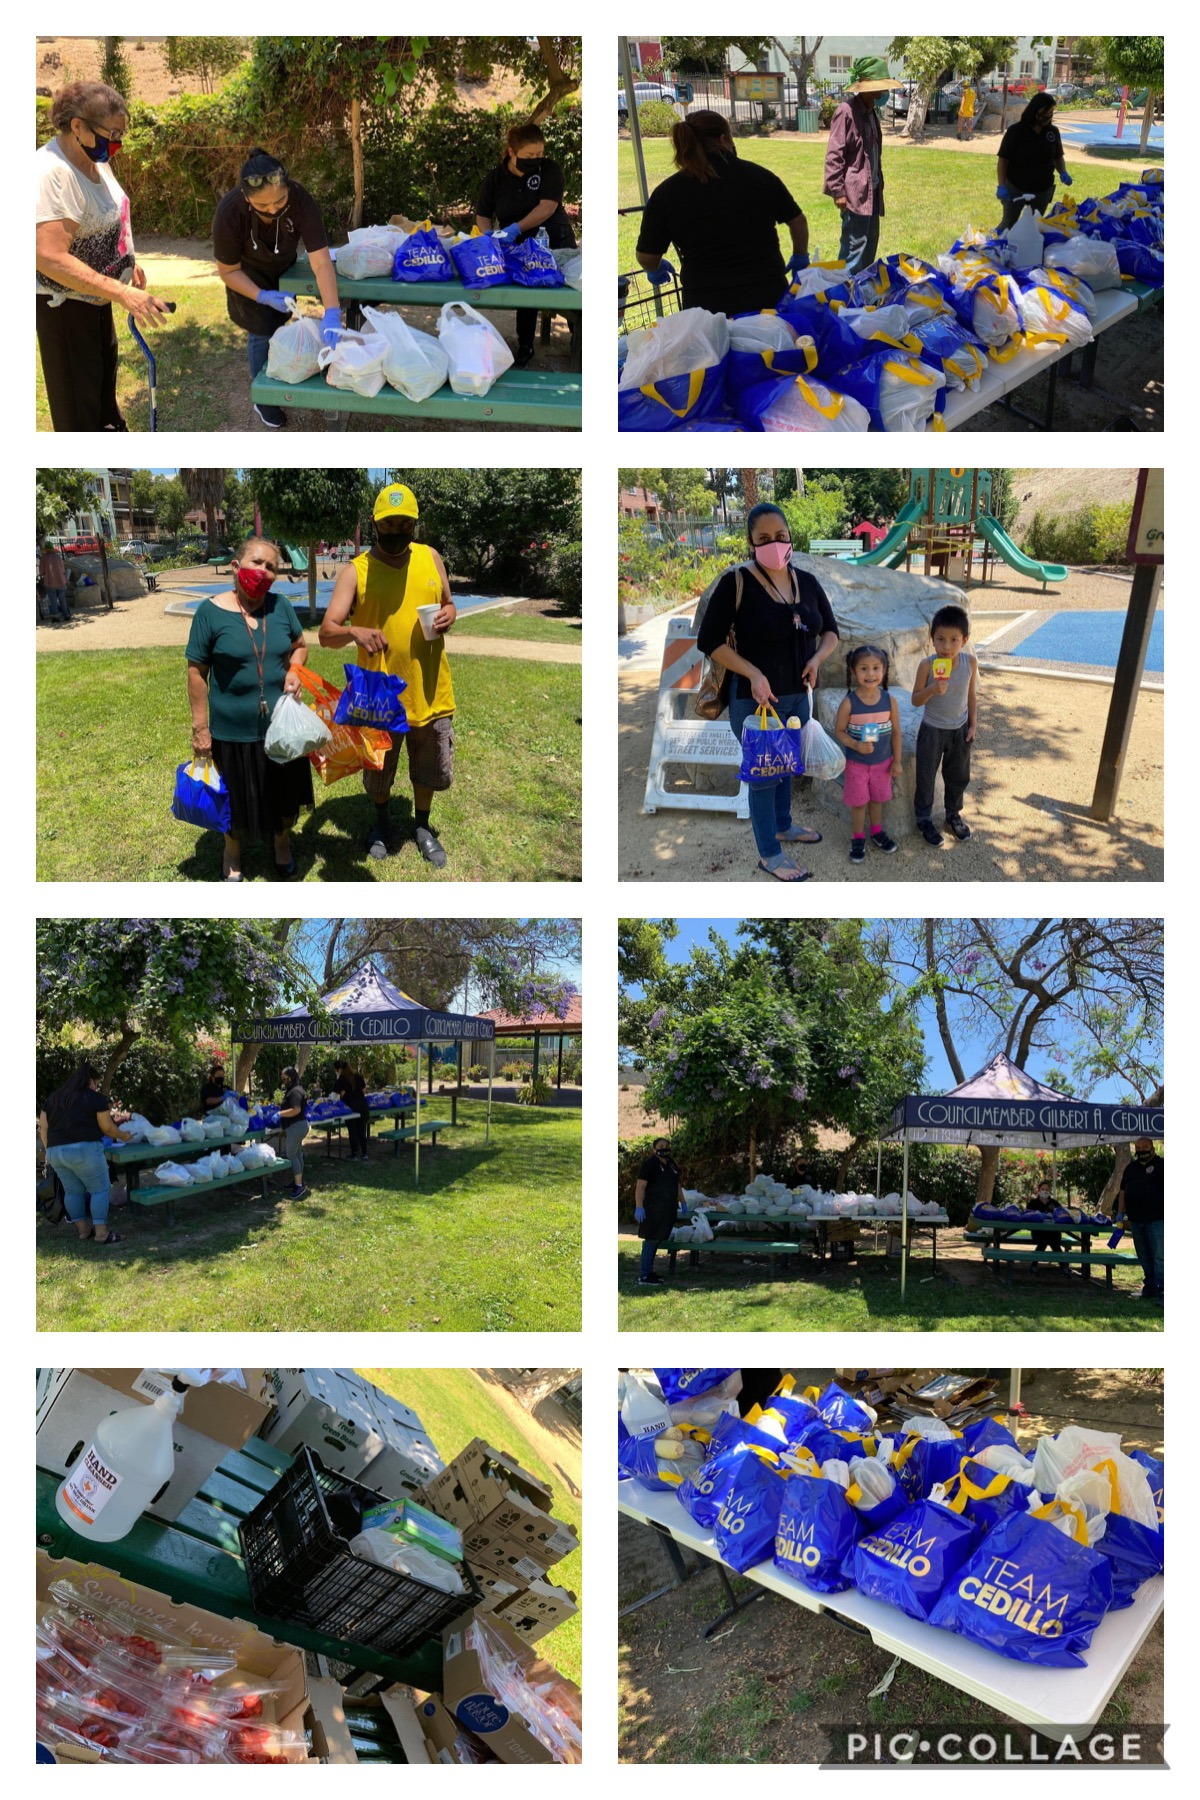 Madres al Servicio de la Comunidad LA, LA Neighborhood Land Trust distribute fruits & veggies in University Park 6-10-2020 COLLAGE